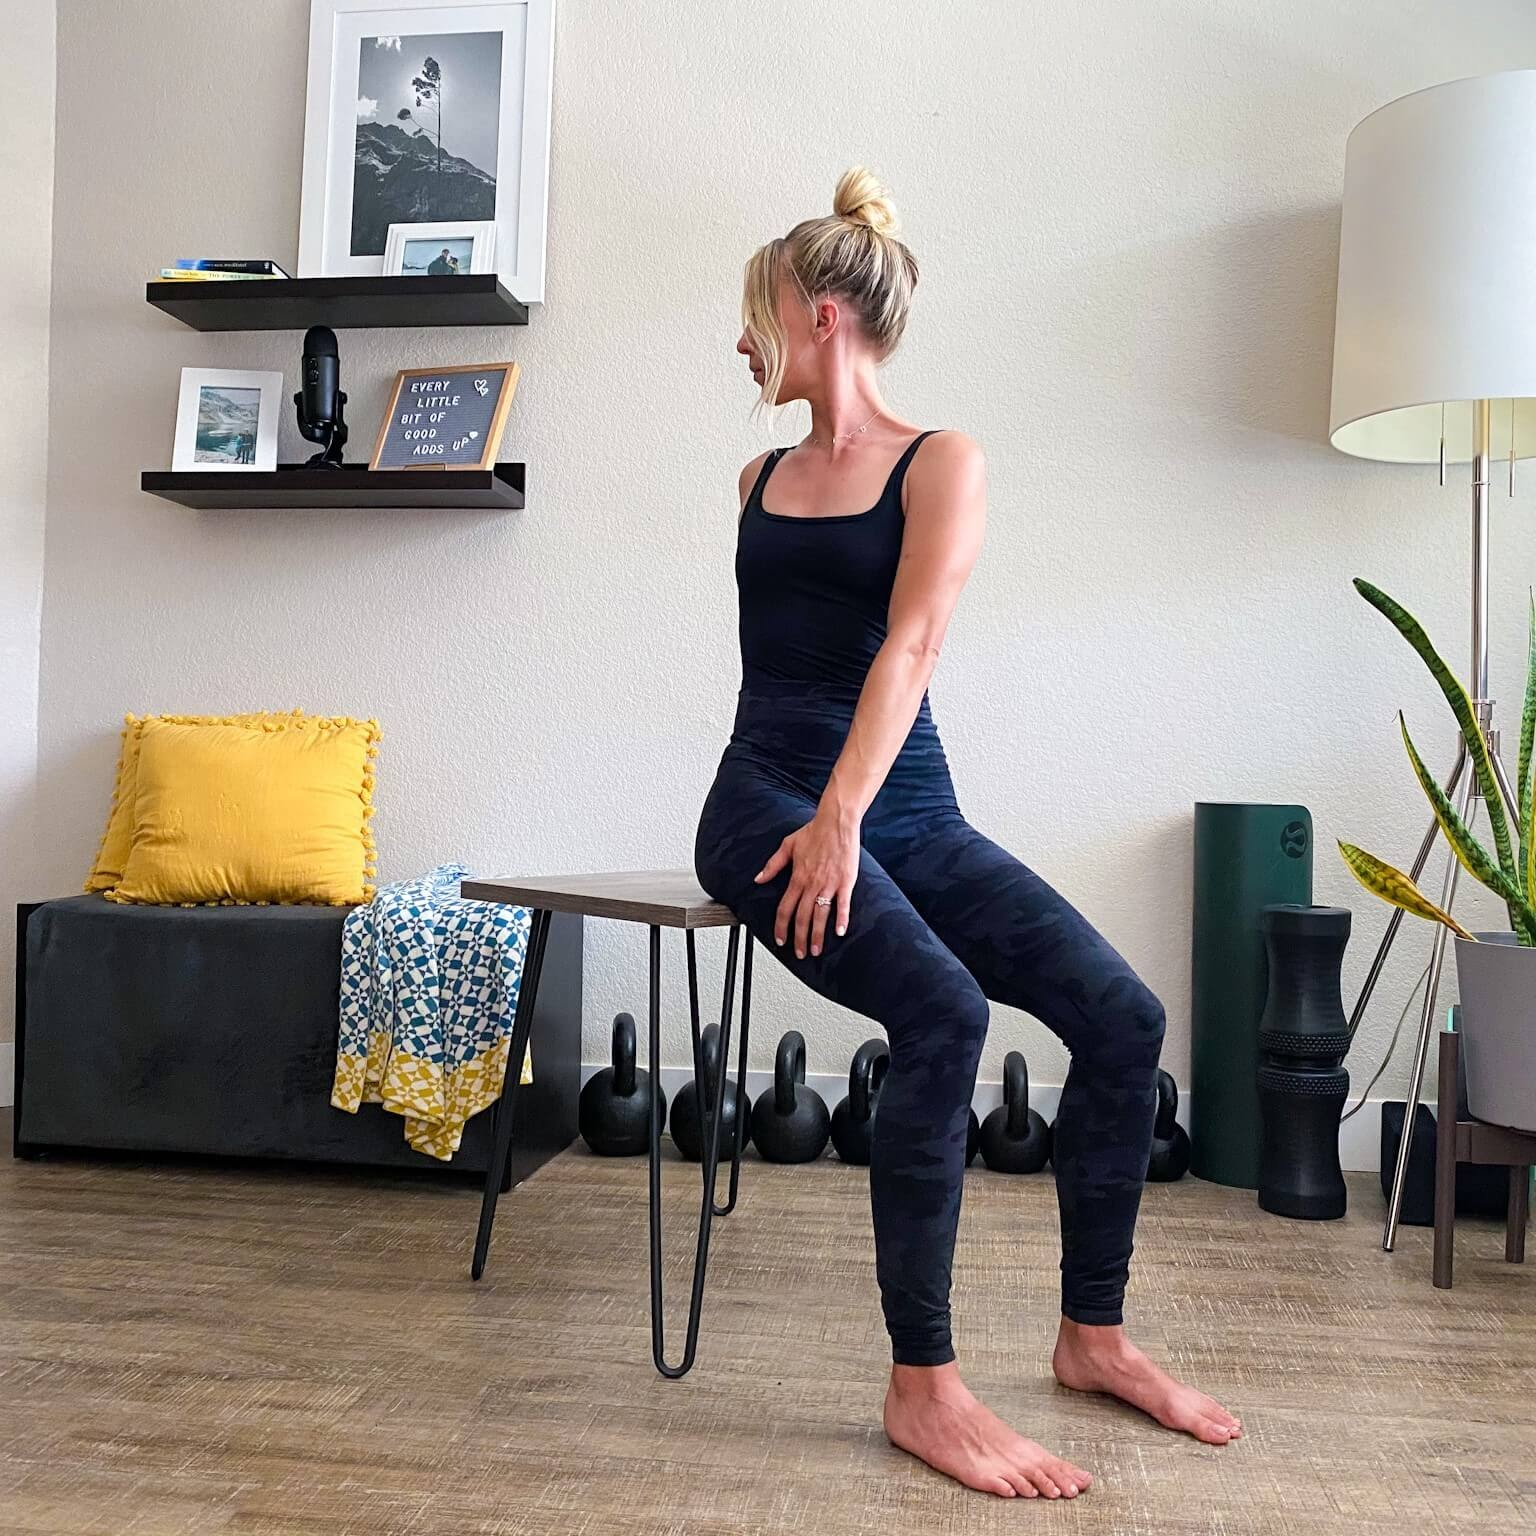 Spinal rotation in chair